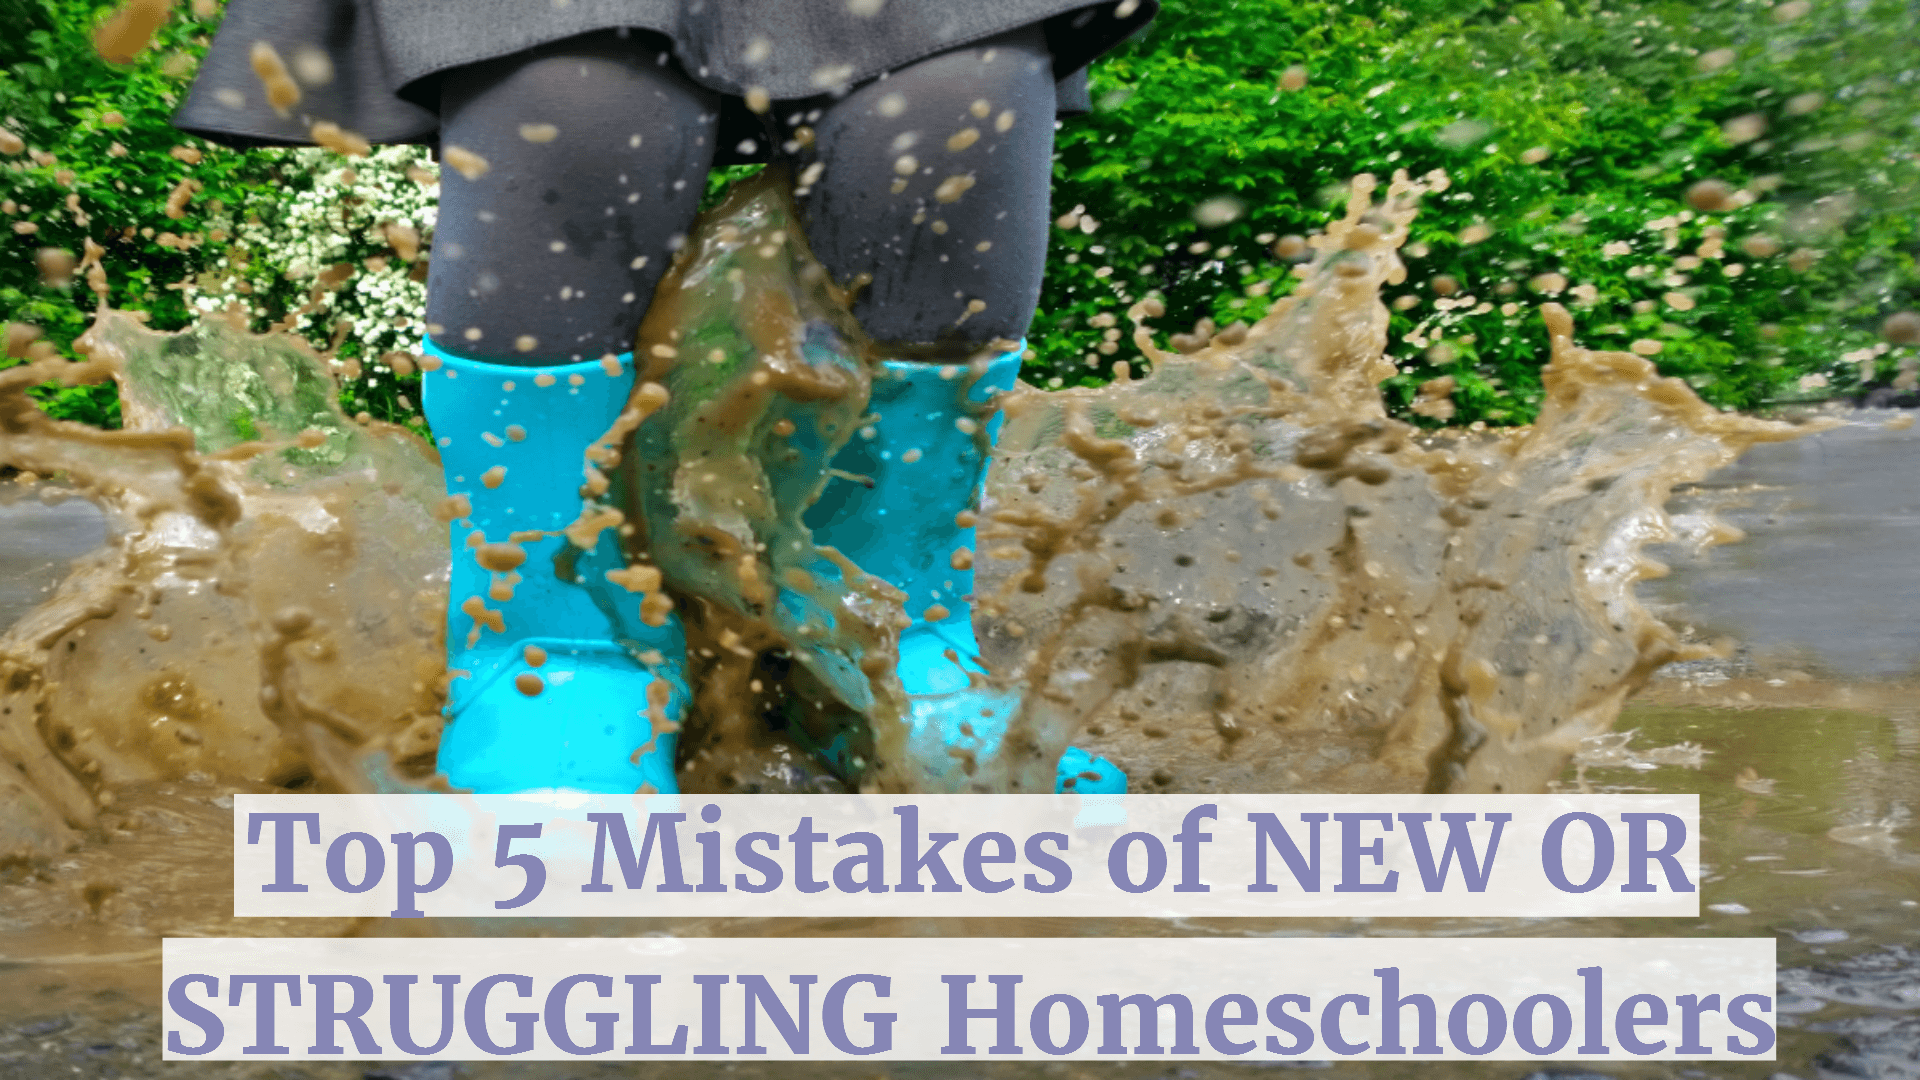 5 Top Mistakes of New or Struggling Homeschoolers